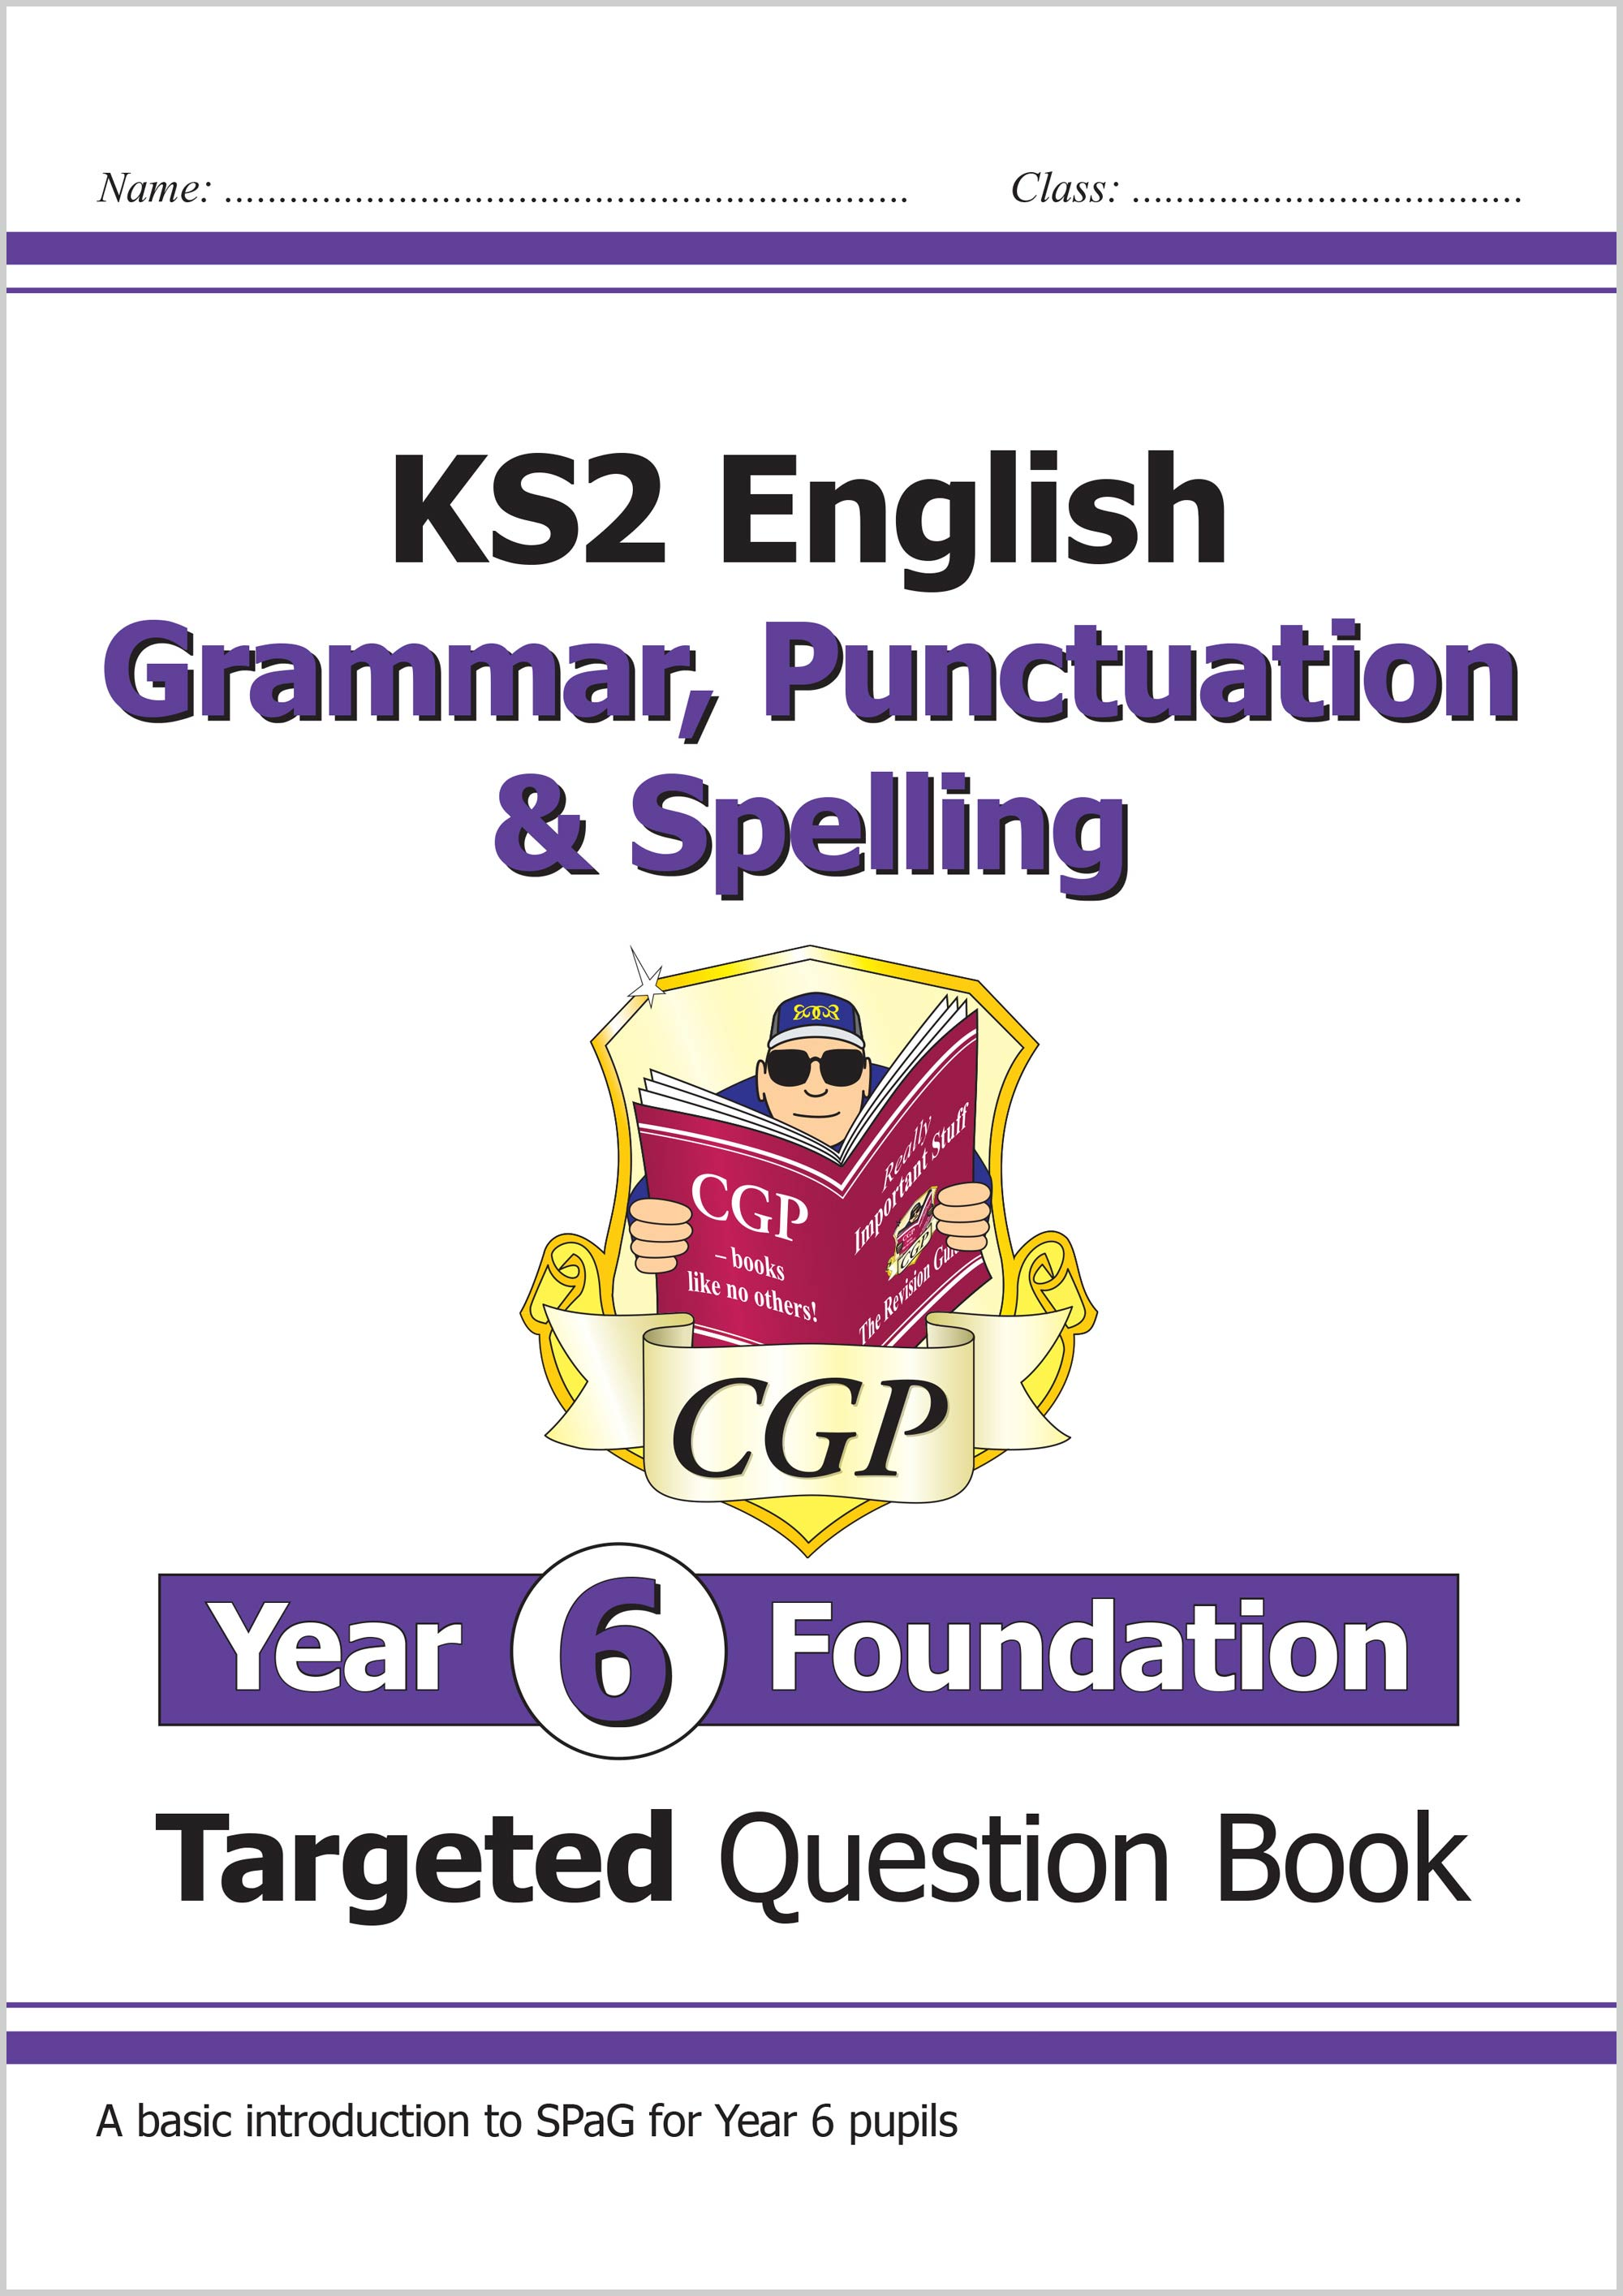 EG6FW21 - New KS2 English Targeted Question Book: Grammar, Punctuation & Spelling - Year 6 Foundatio